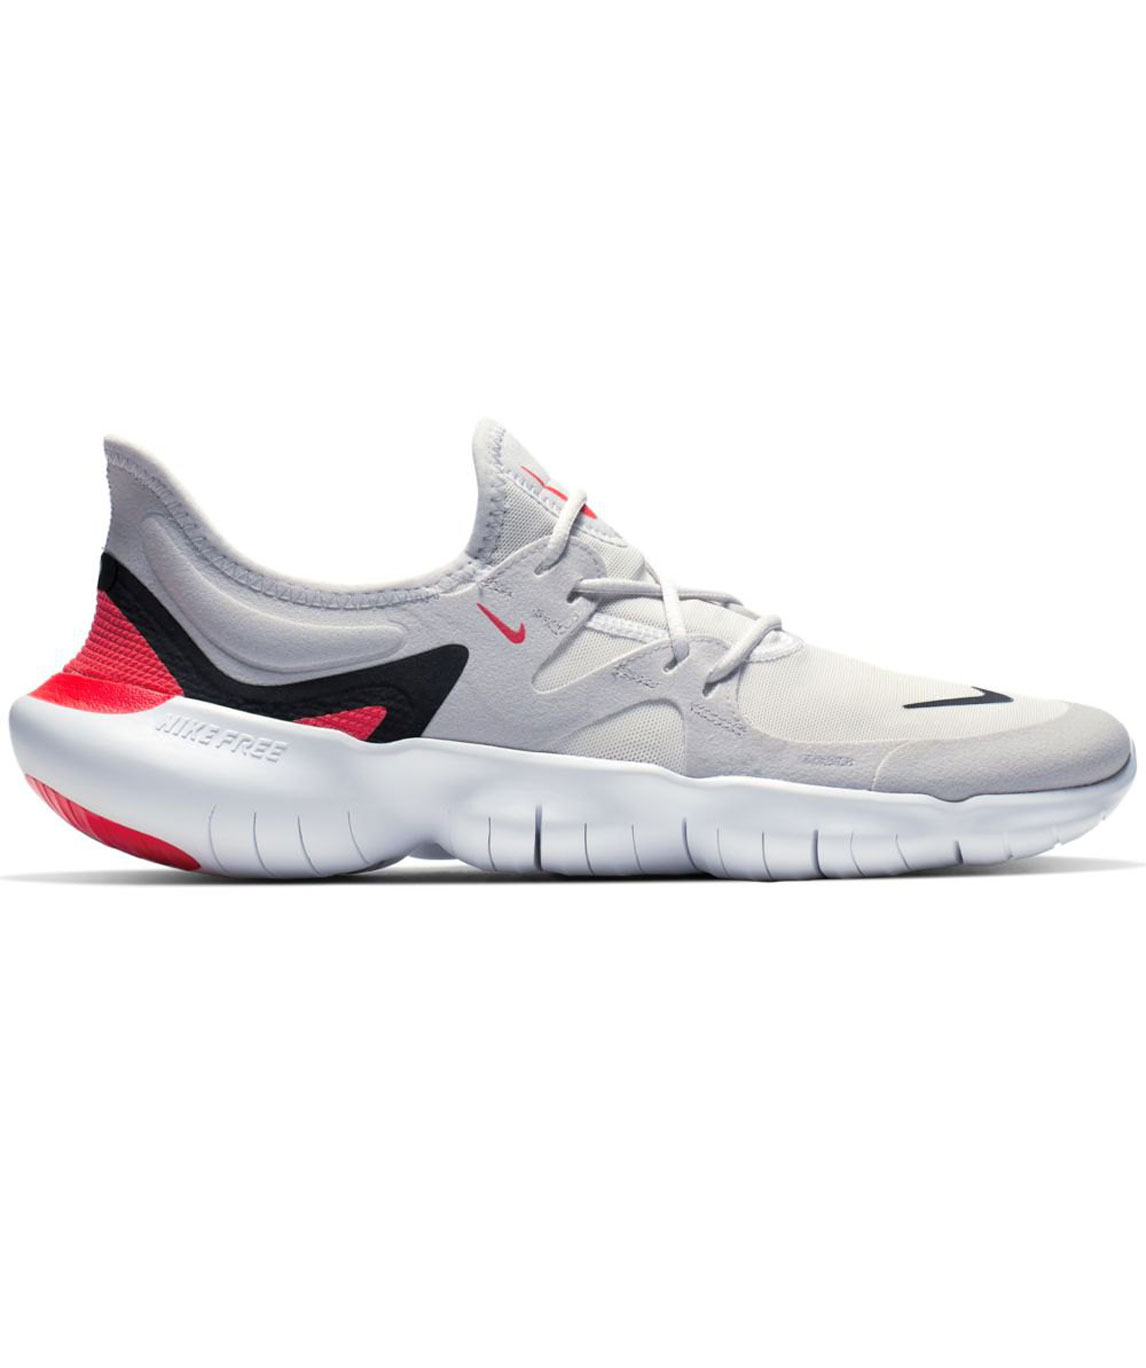 NIKE FREE RN 5.0 GREY LACE-UP SPORTS SHOES